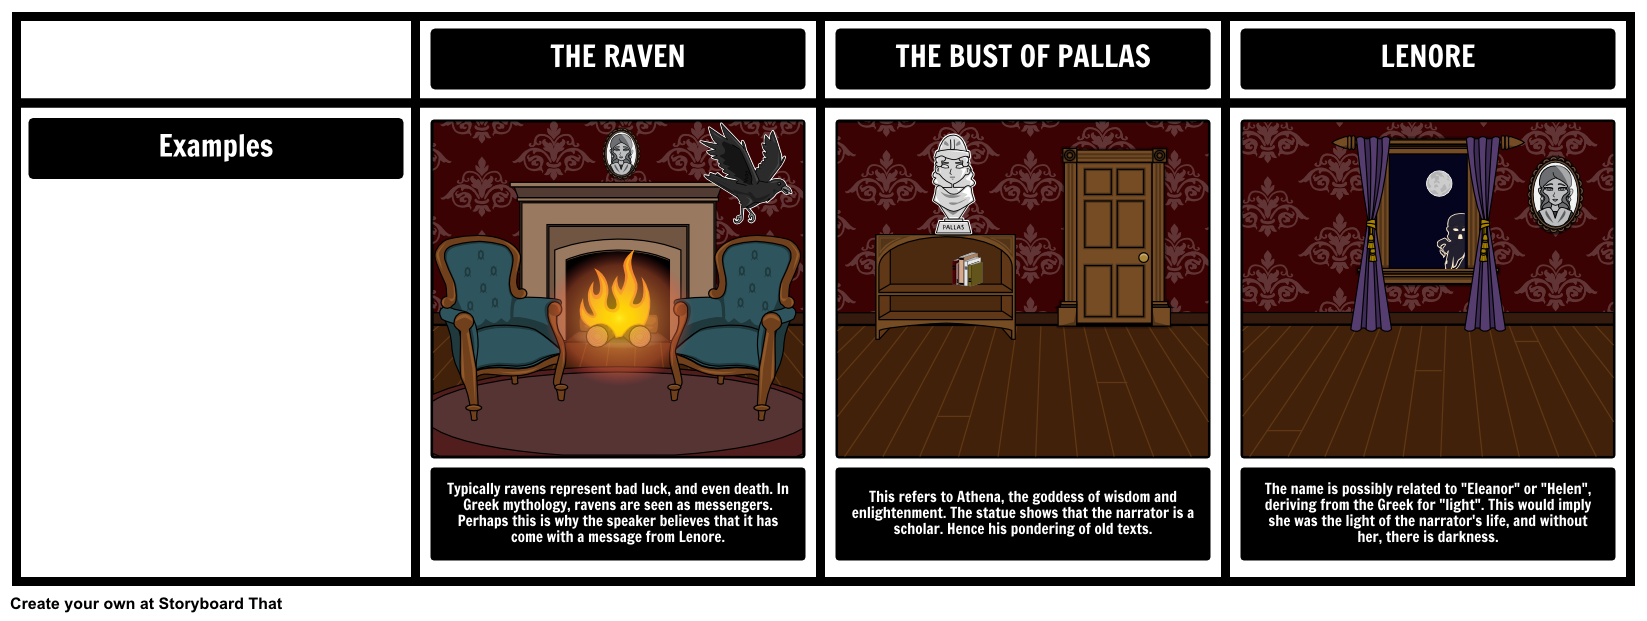 The raven by edgar allen poe symbolism make your students provide the raven by edgar allen poe symbolism make your students provide examples of symbolism biocorpaavc Gallery